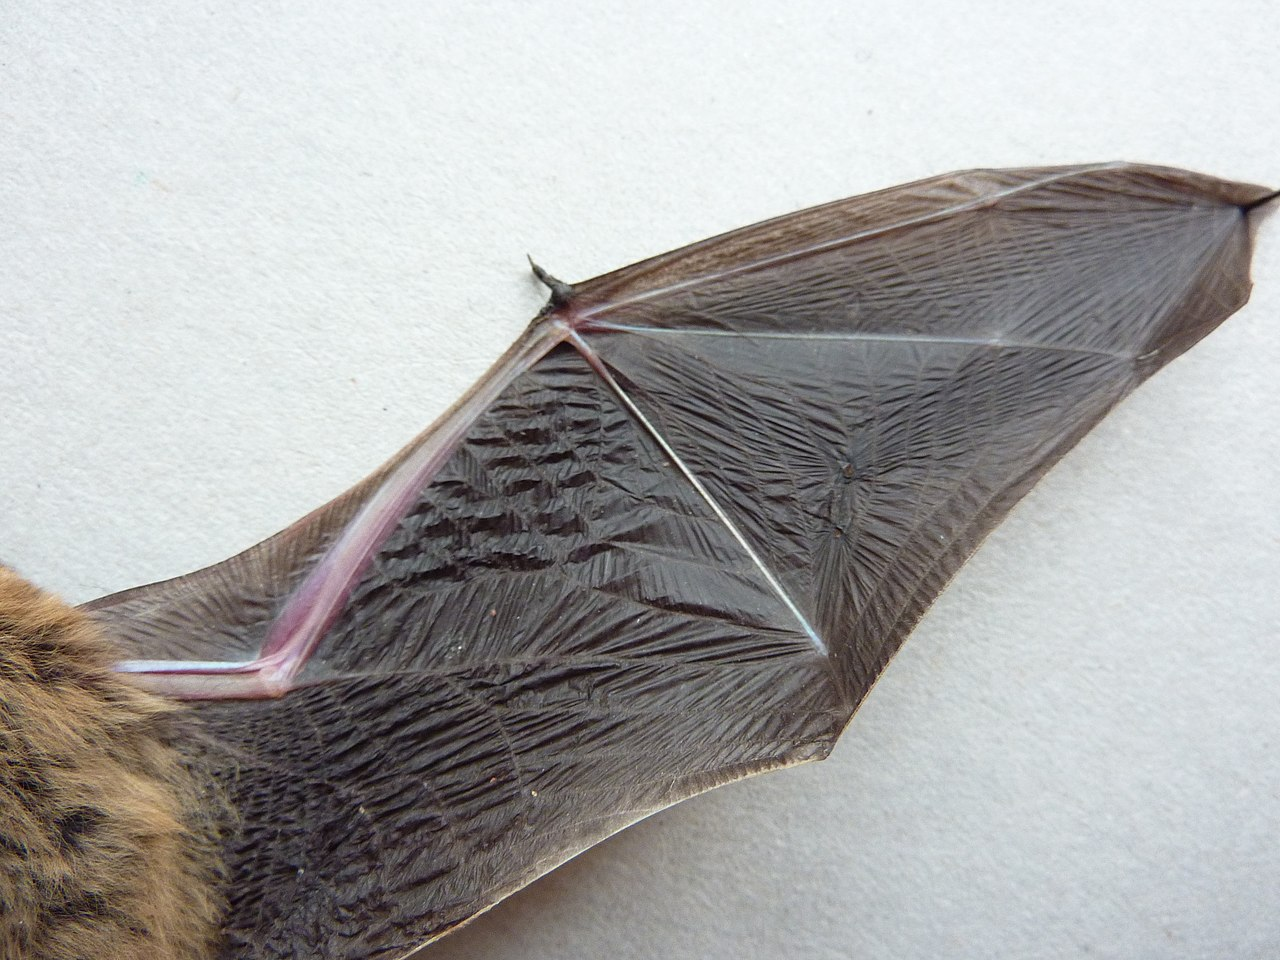 Bat Wings File:bat-wing underside.jpg